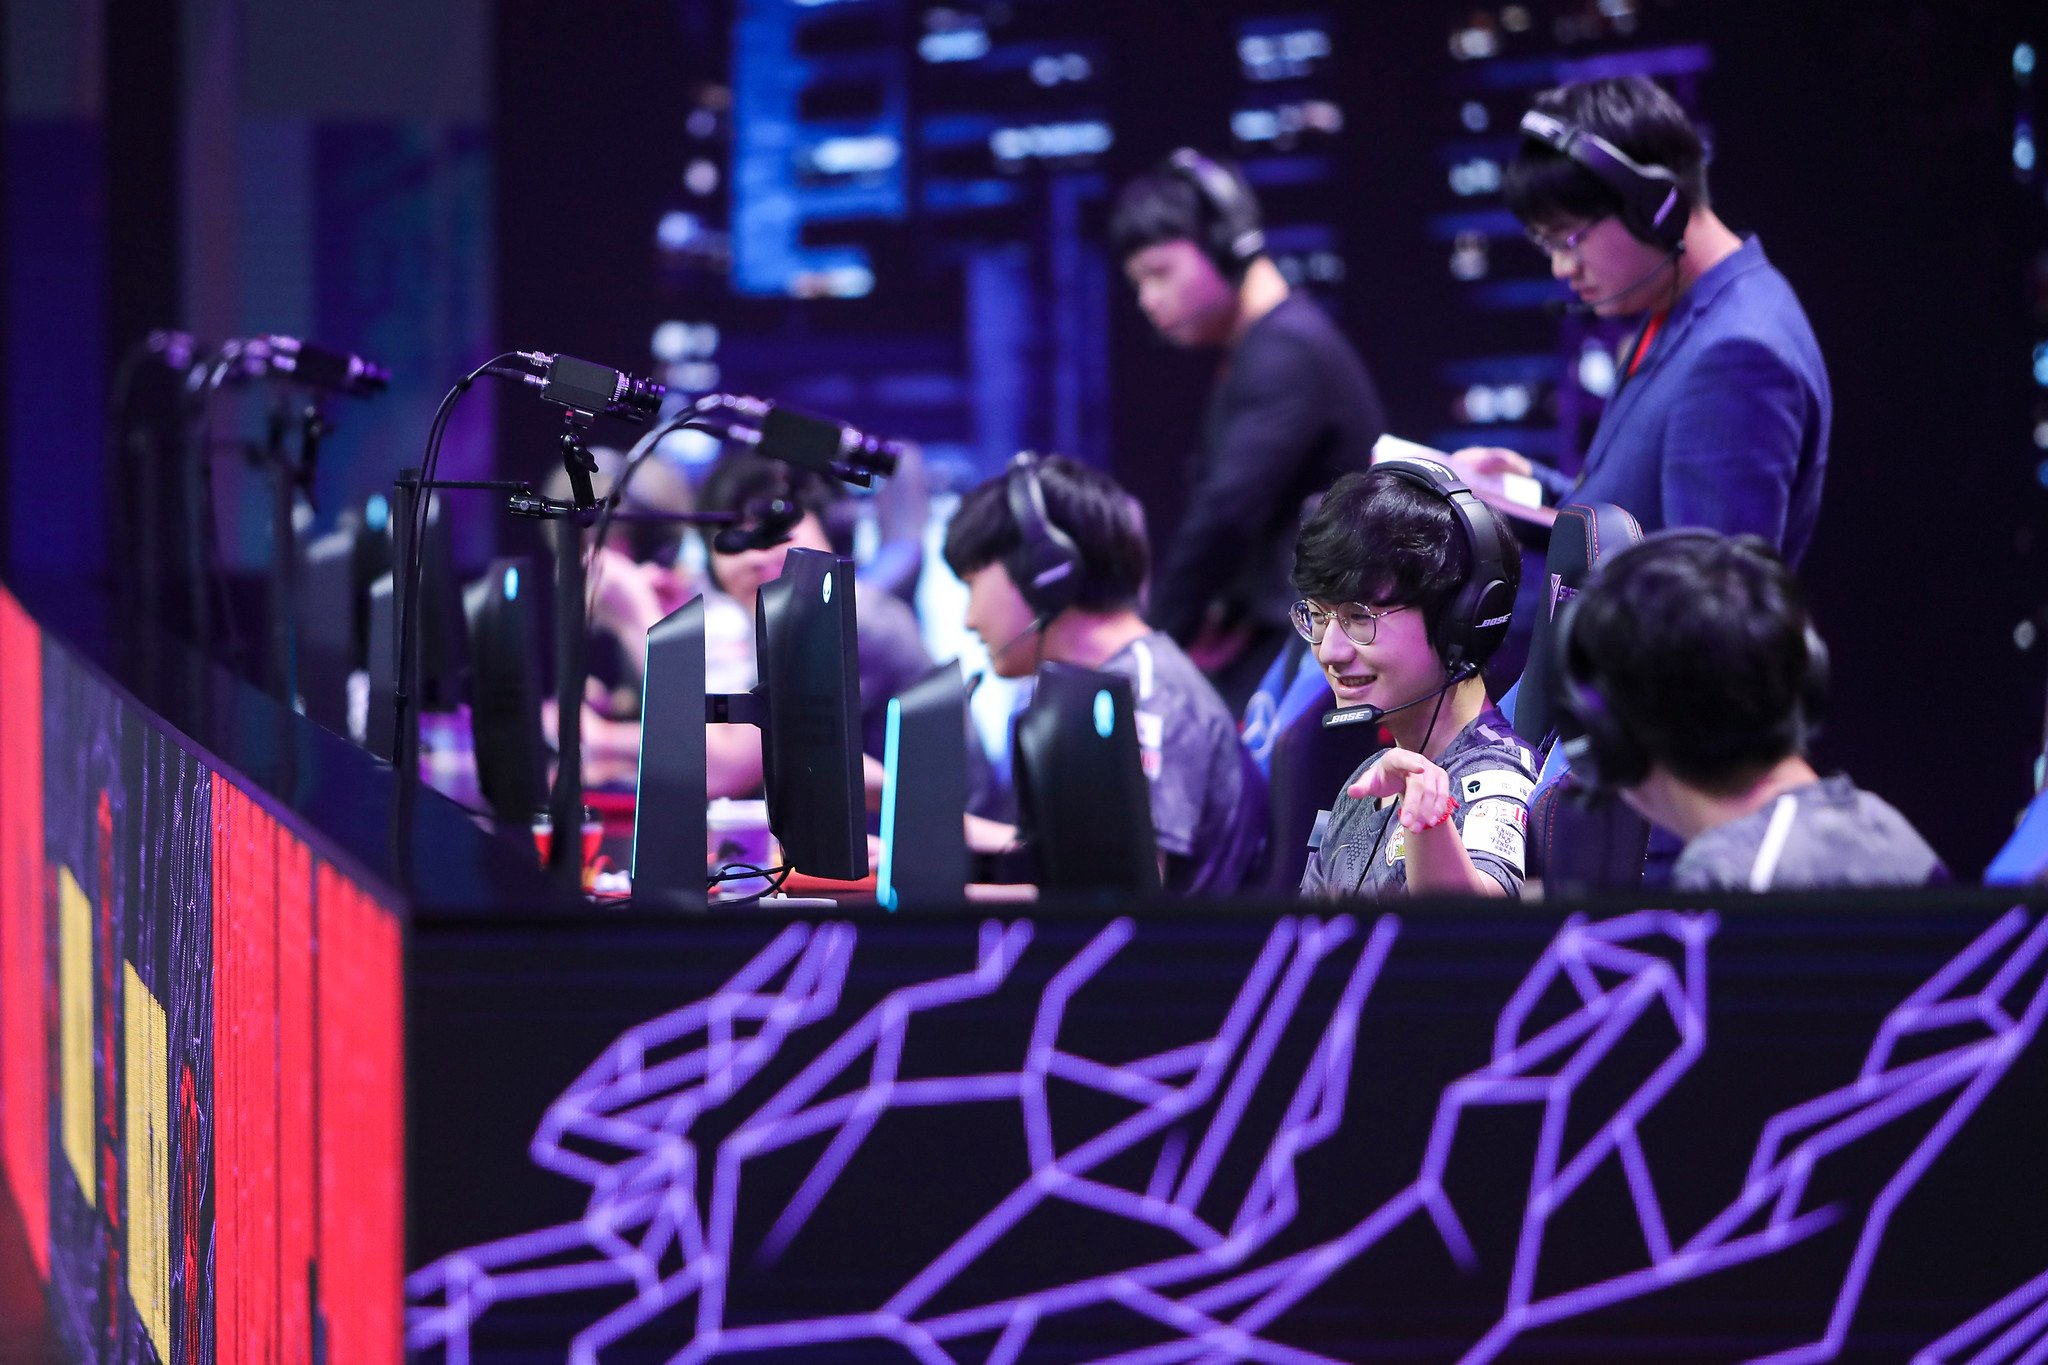 League Of Legends World Championship 2020 Play-In Stage Day Five: Rainbow7 Vs LGD Gaming